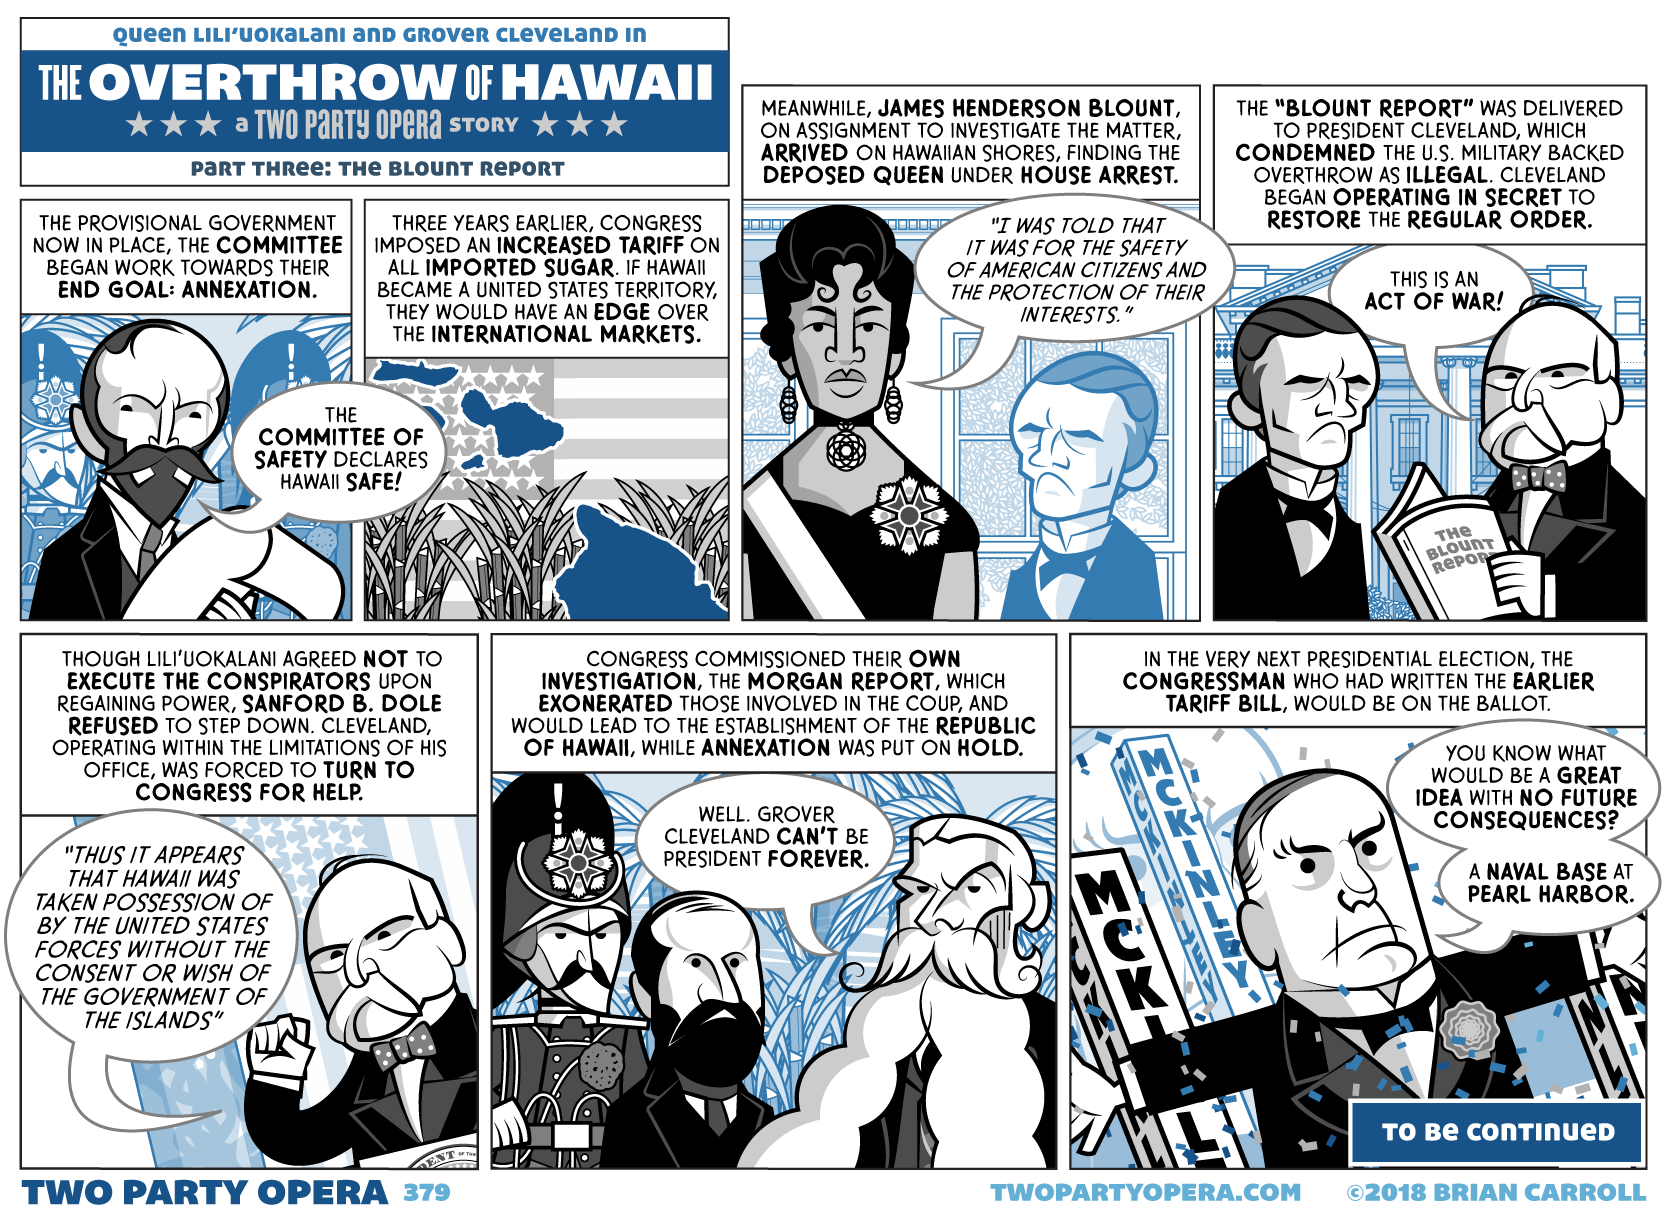 The Overthrow of Hawaii – Part Three: The Blount Report